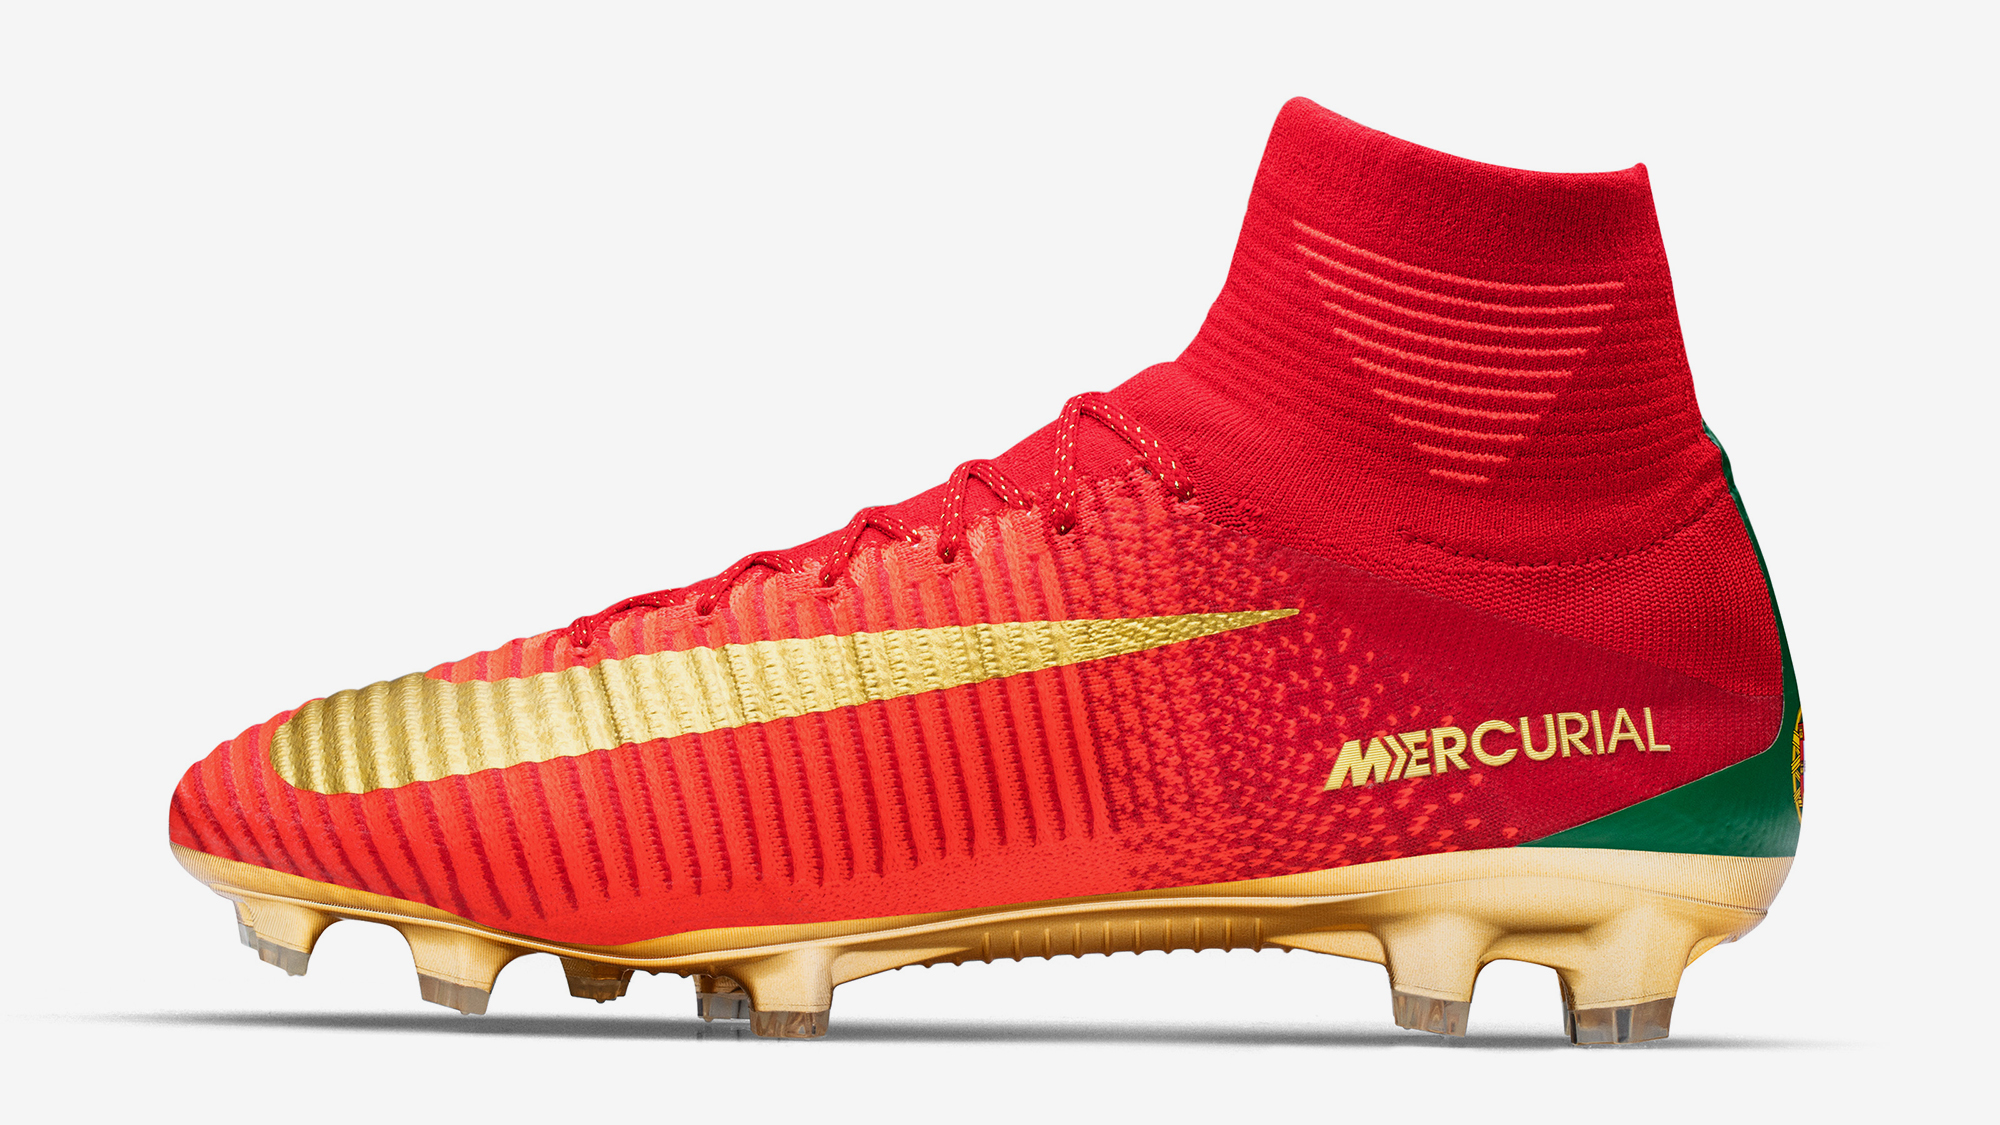 special-portugal-boots-for-cristiano-ronaldo-cr7-mercurial-campeoes6_70645